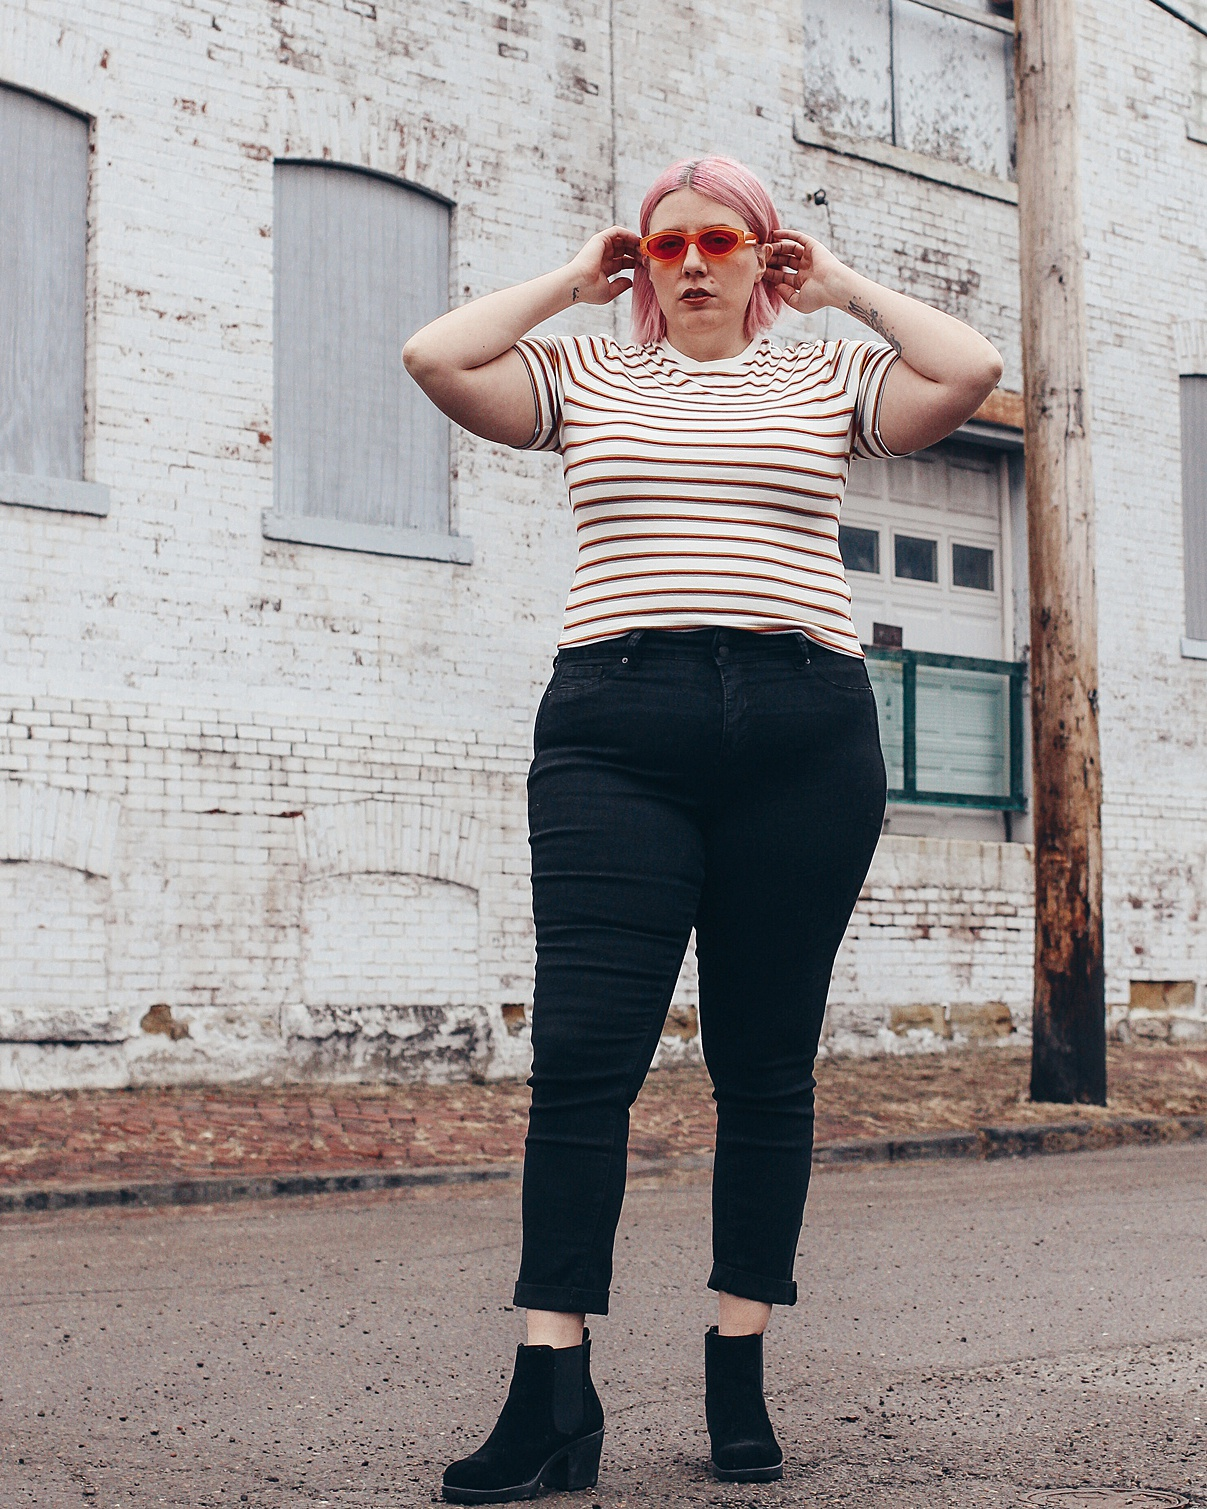 Jamie JeTaime Wearing Royalty For Me plus sized affordable jeans